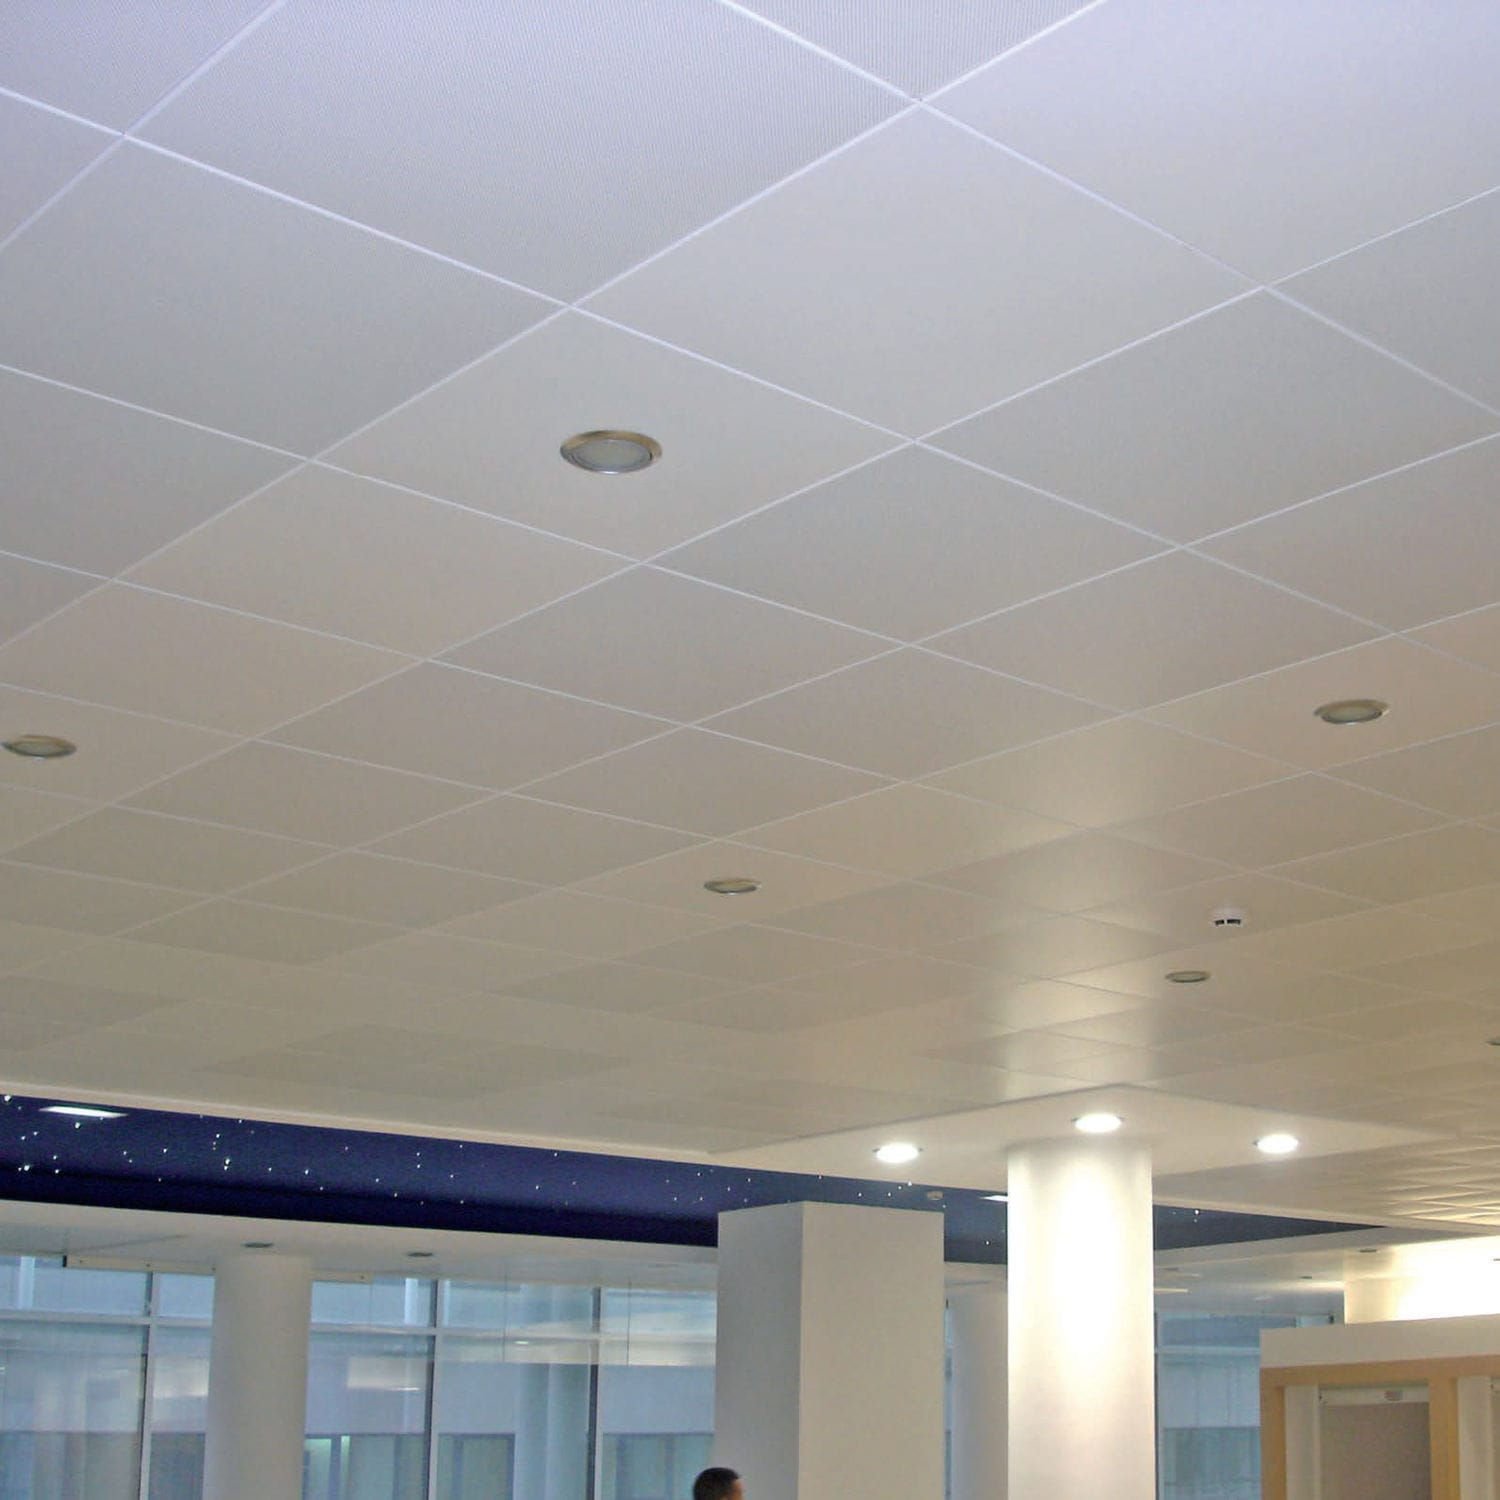 Metal suspended ceiling tile acoustic perforated monobac metal suspended ceiling tile acoustic perforated monobac dailygadgetfo Images